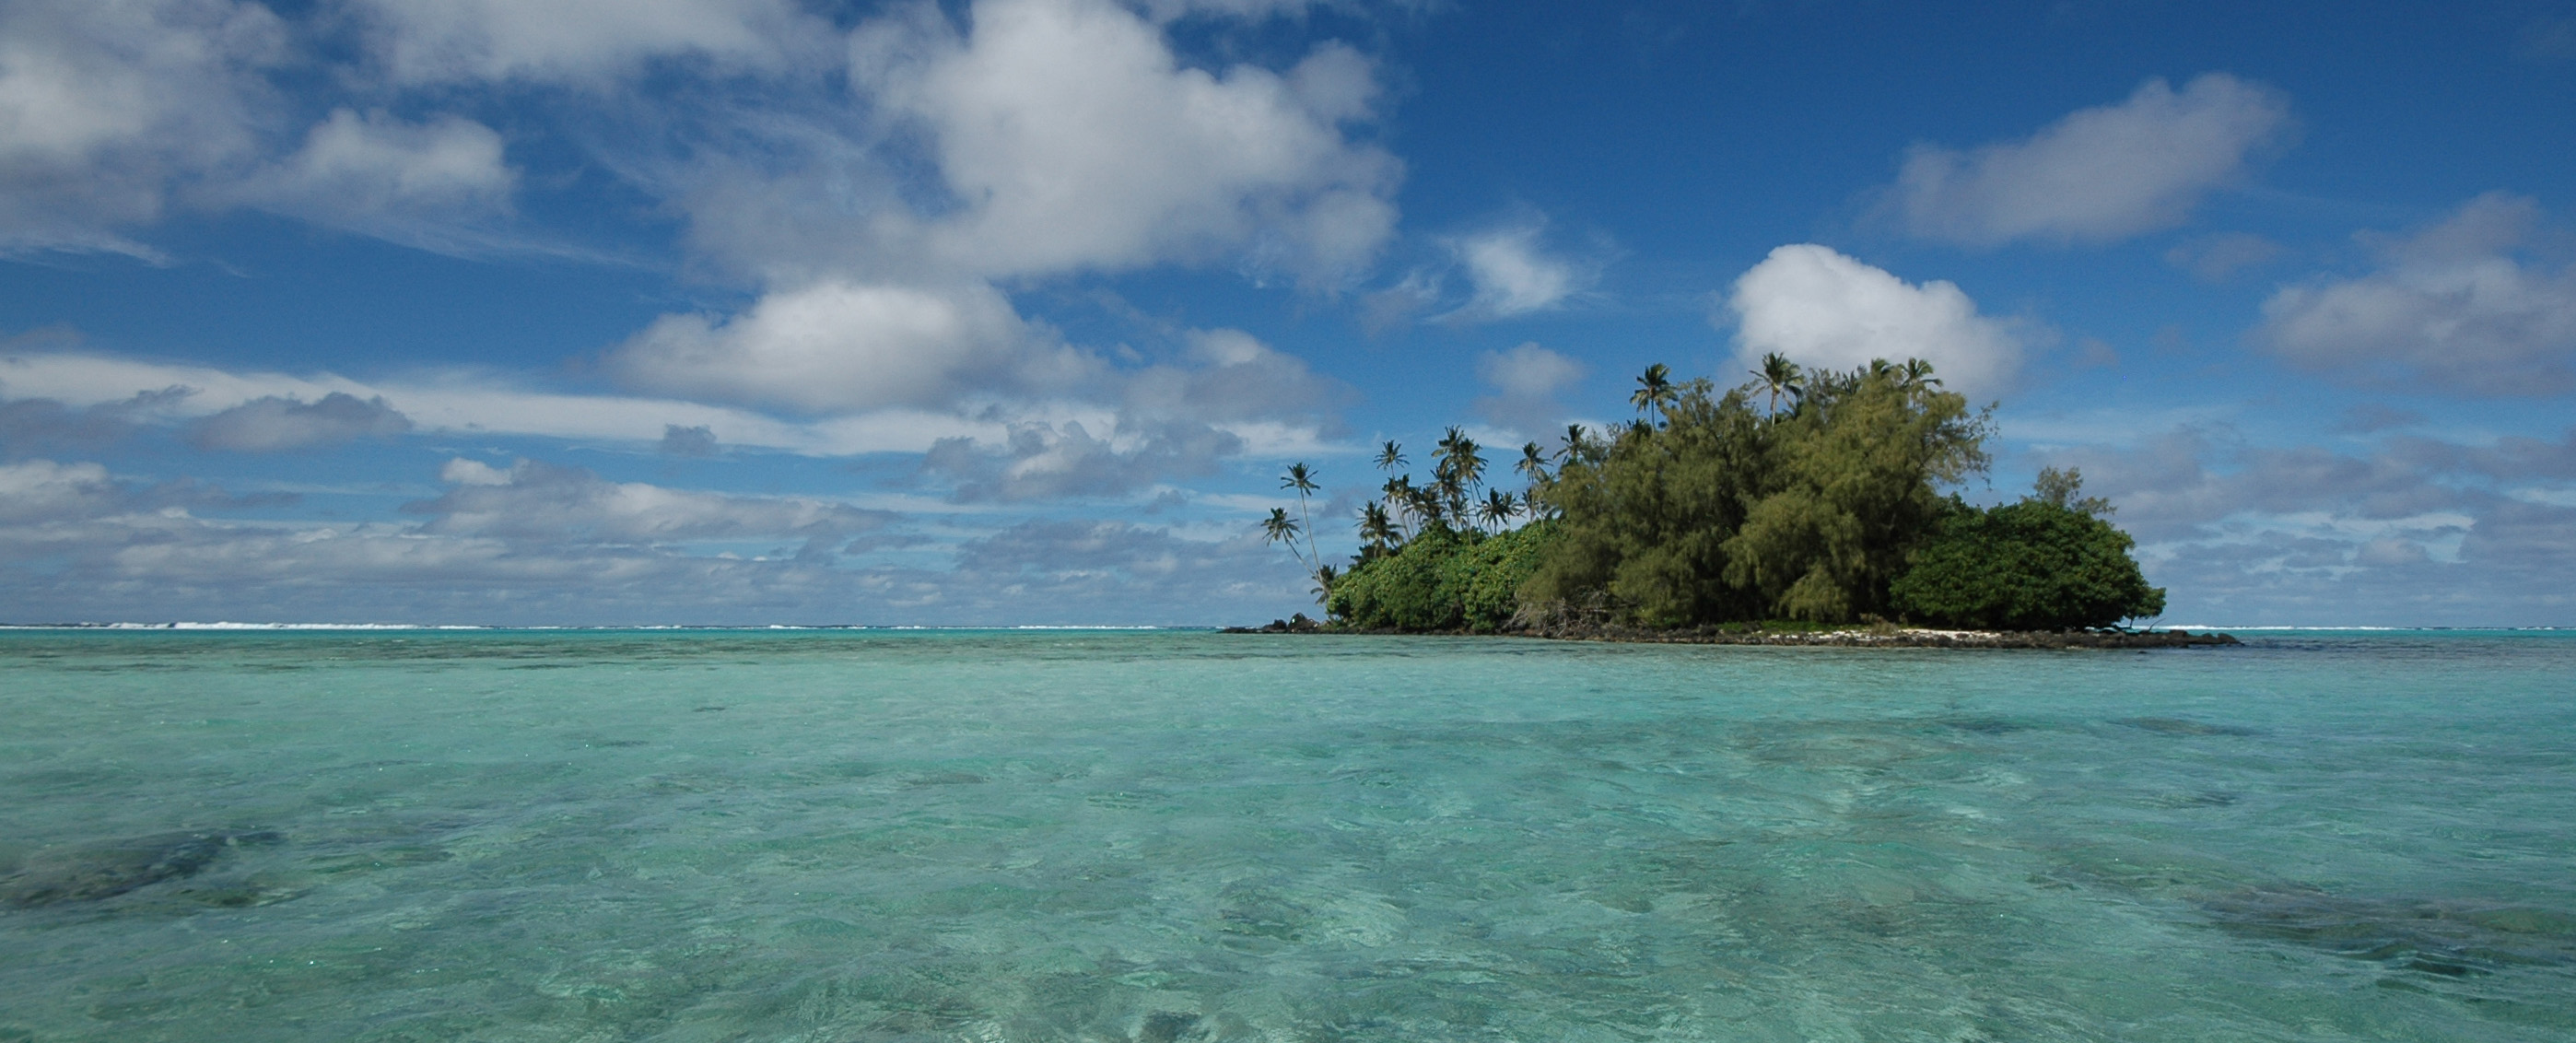 Cook Islands - by Peter Yenney